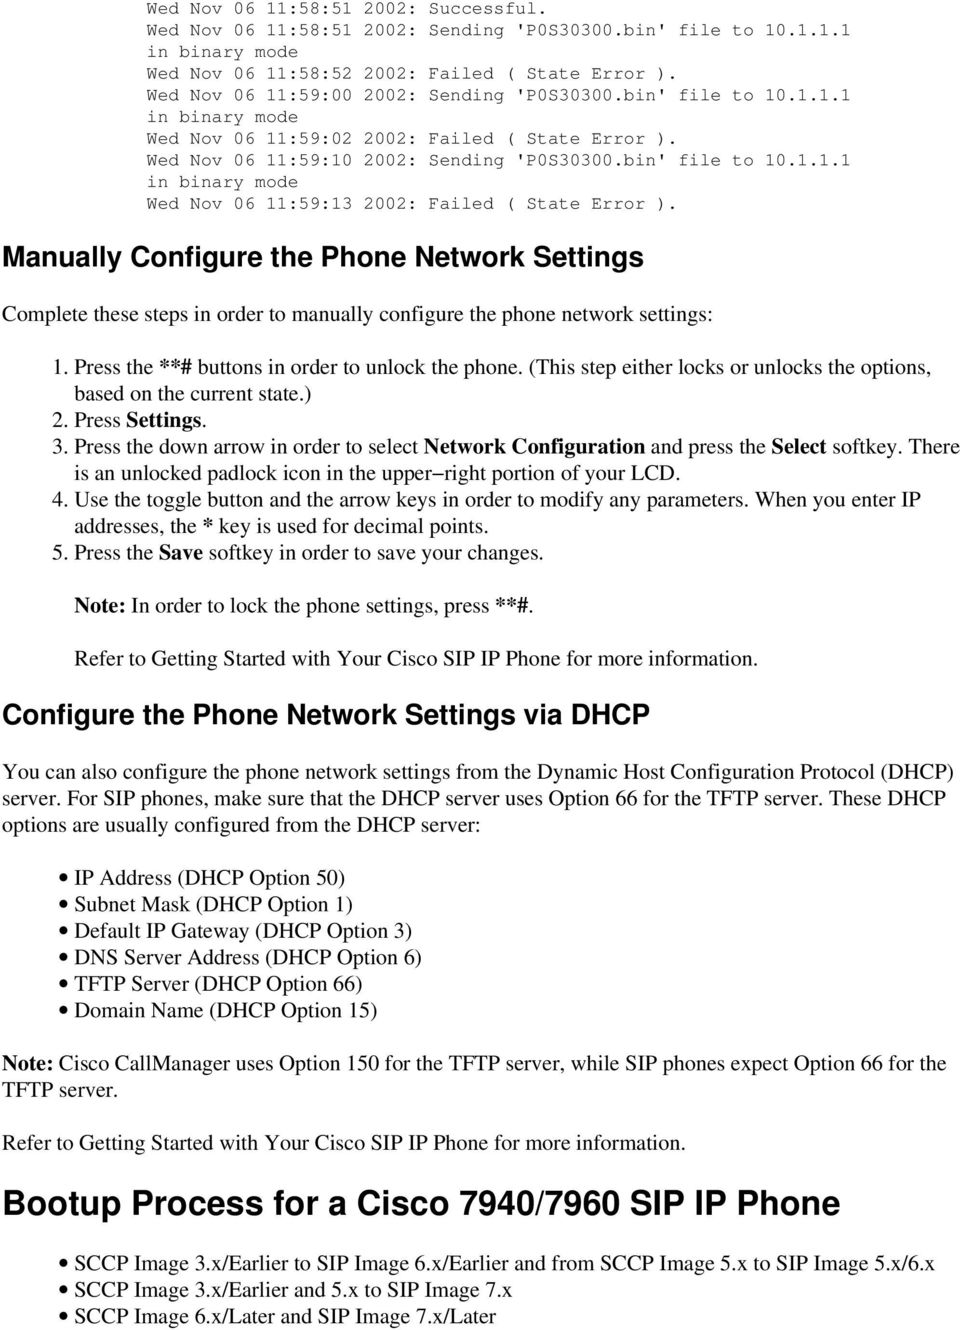 Converting a Cisco 7940/7960 SCCP Phone to a SIP Phone and